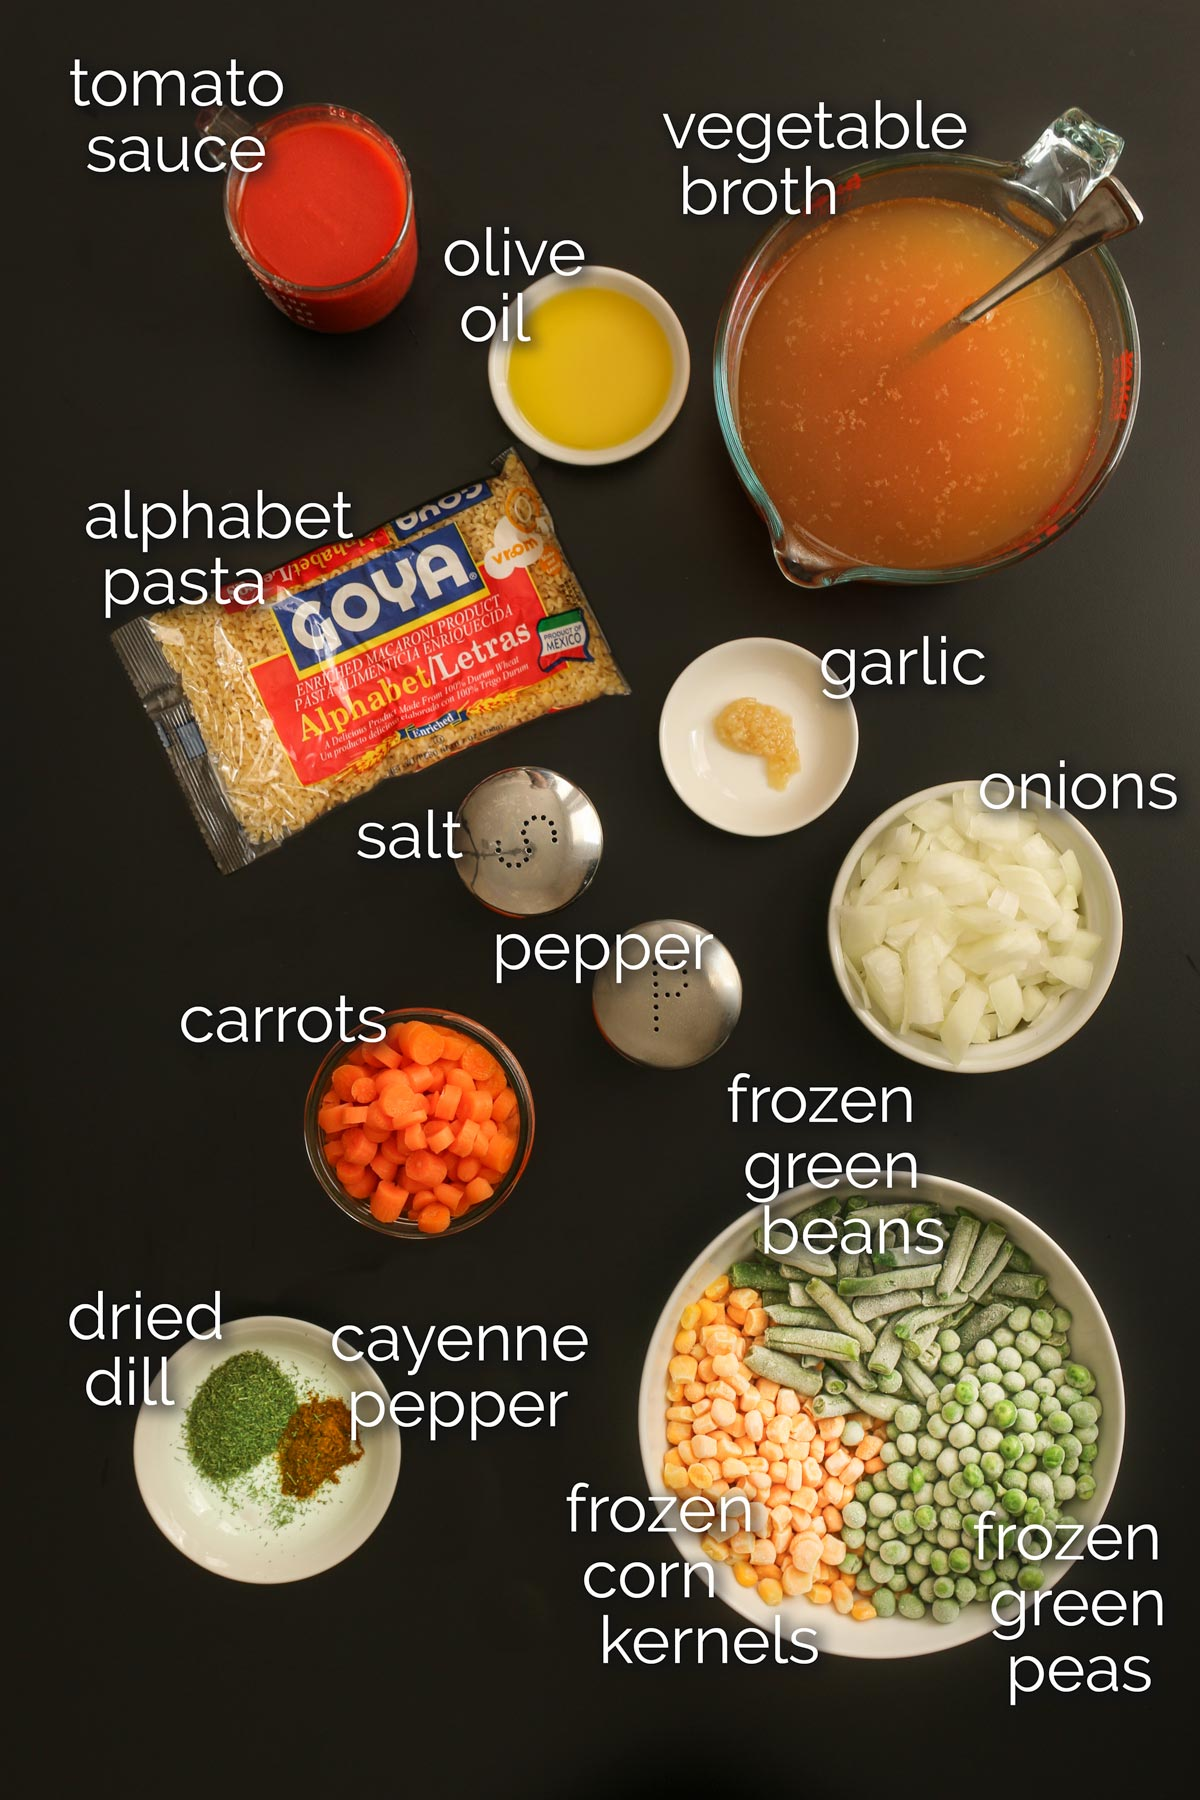 ingredients for vegan soup with alphabet noodles laid out on black table top.